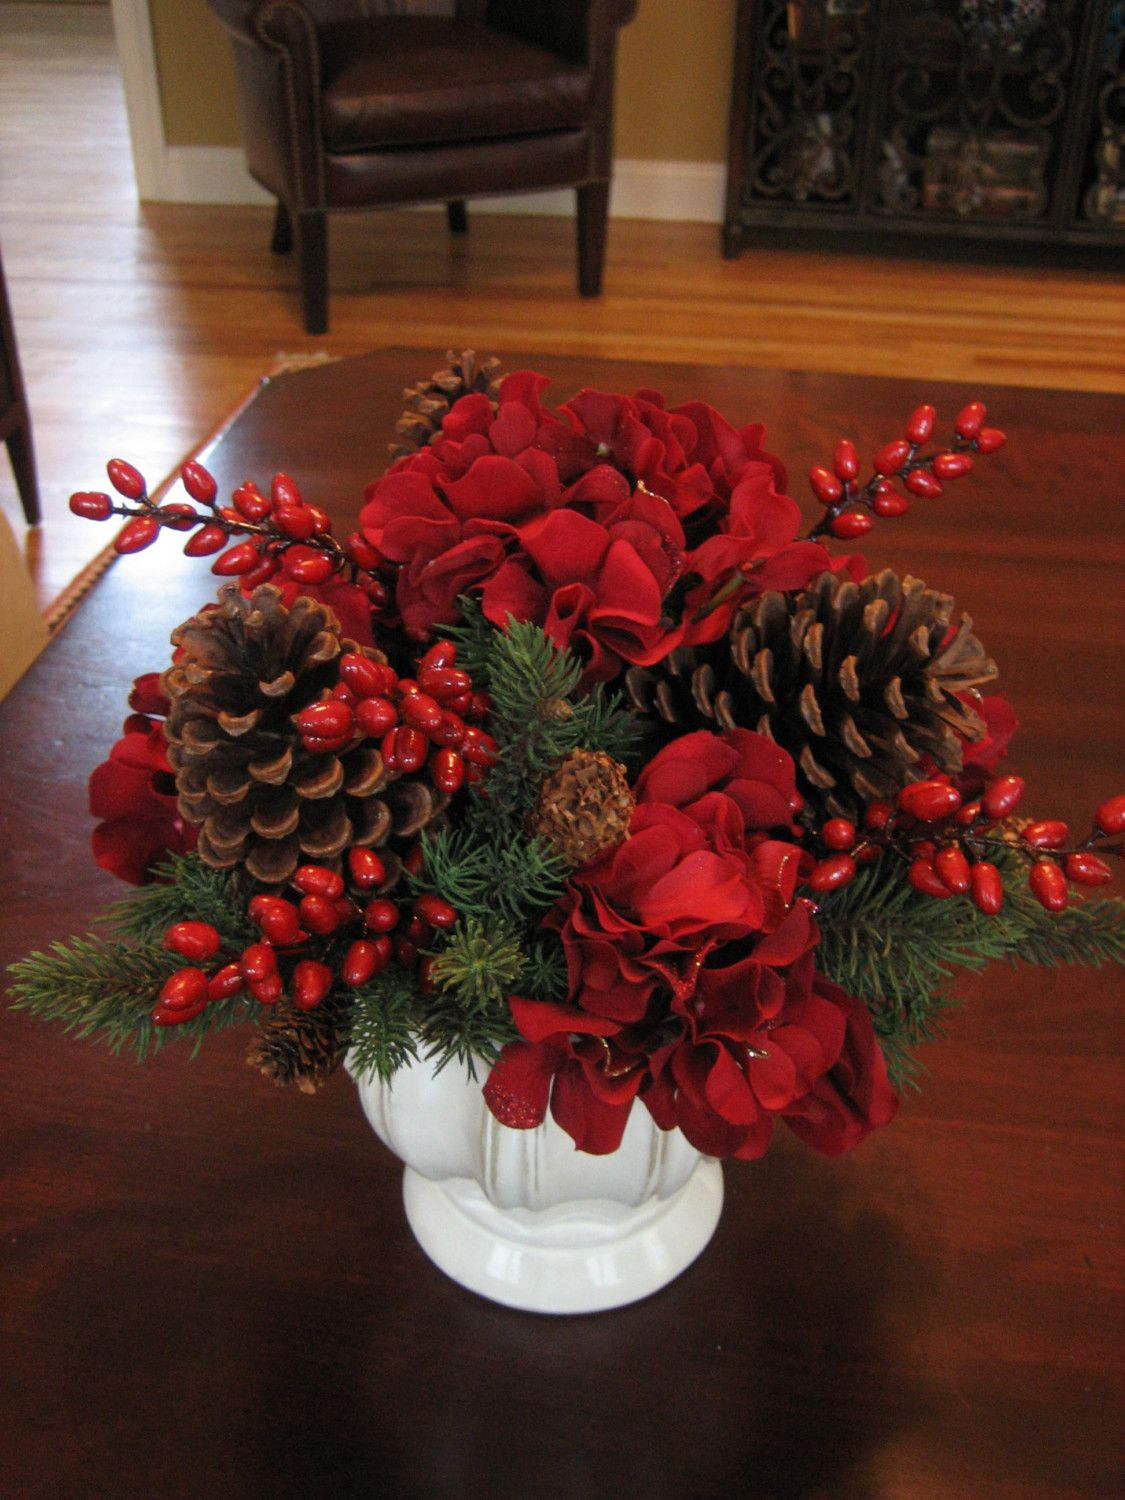 Christmas arrangements beauty rose flower